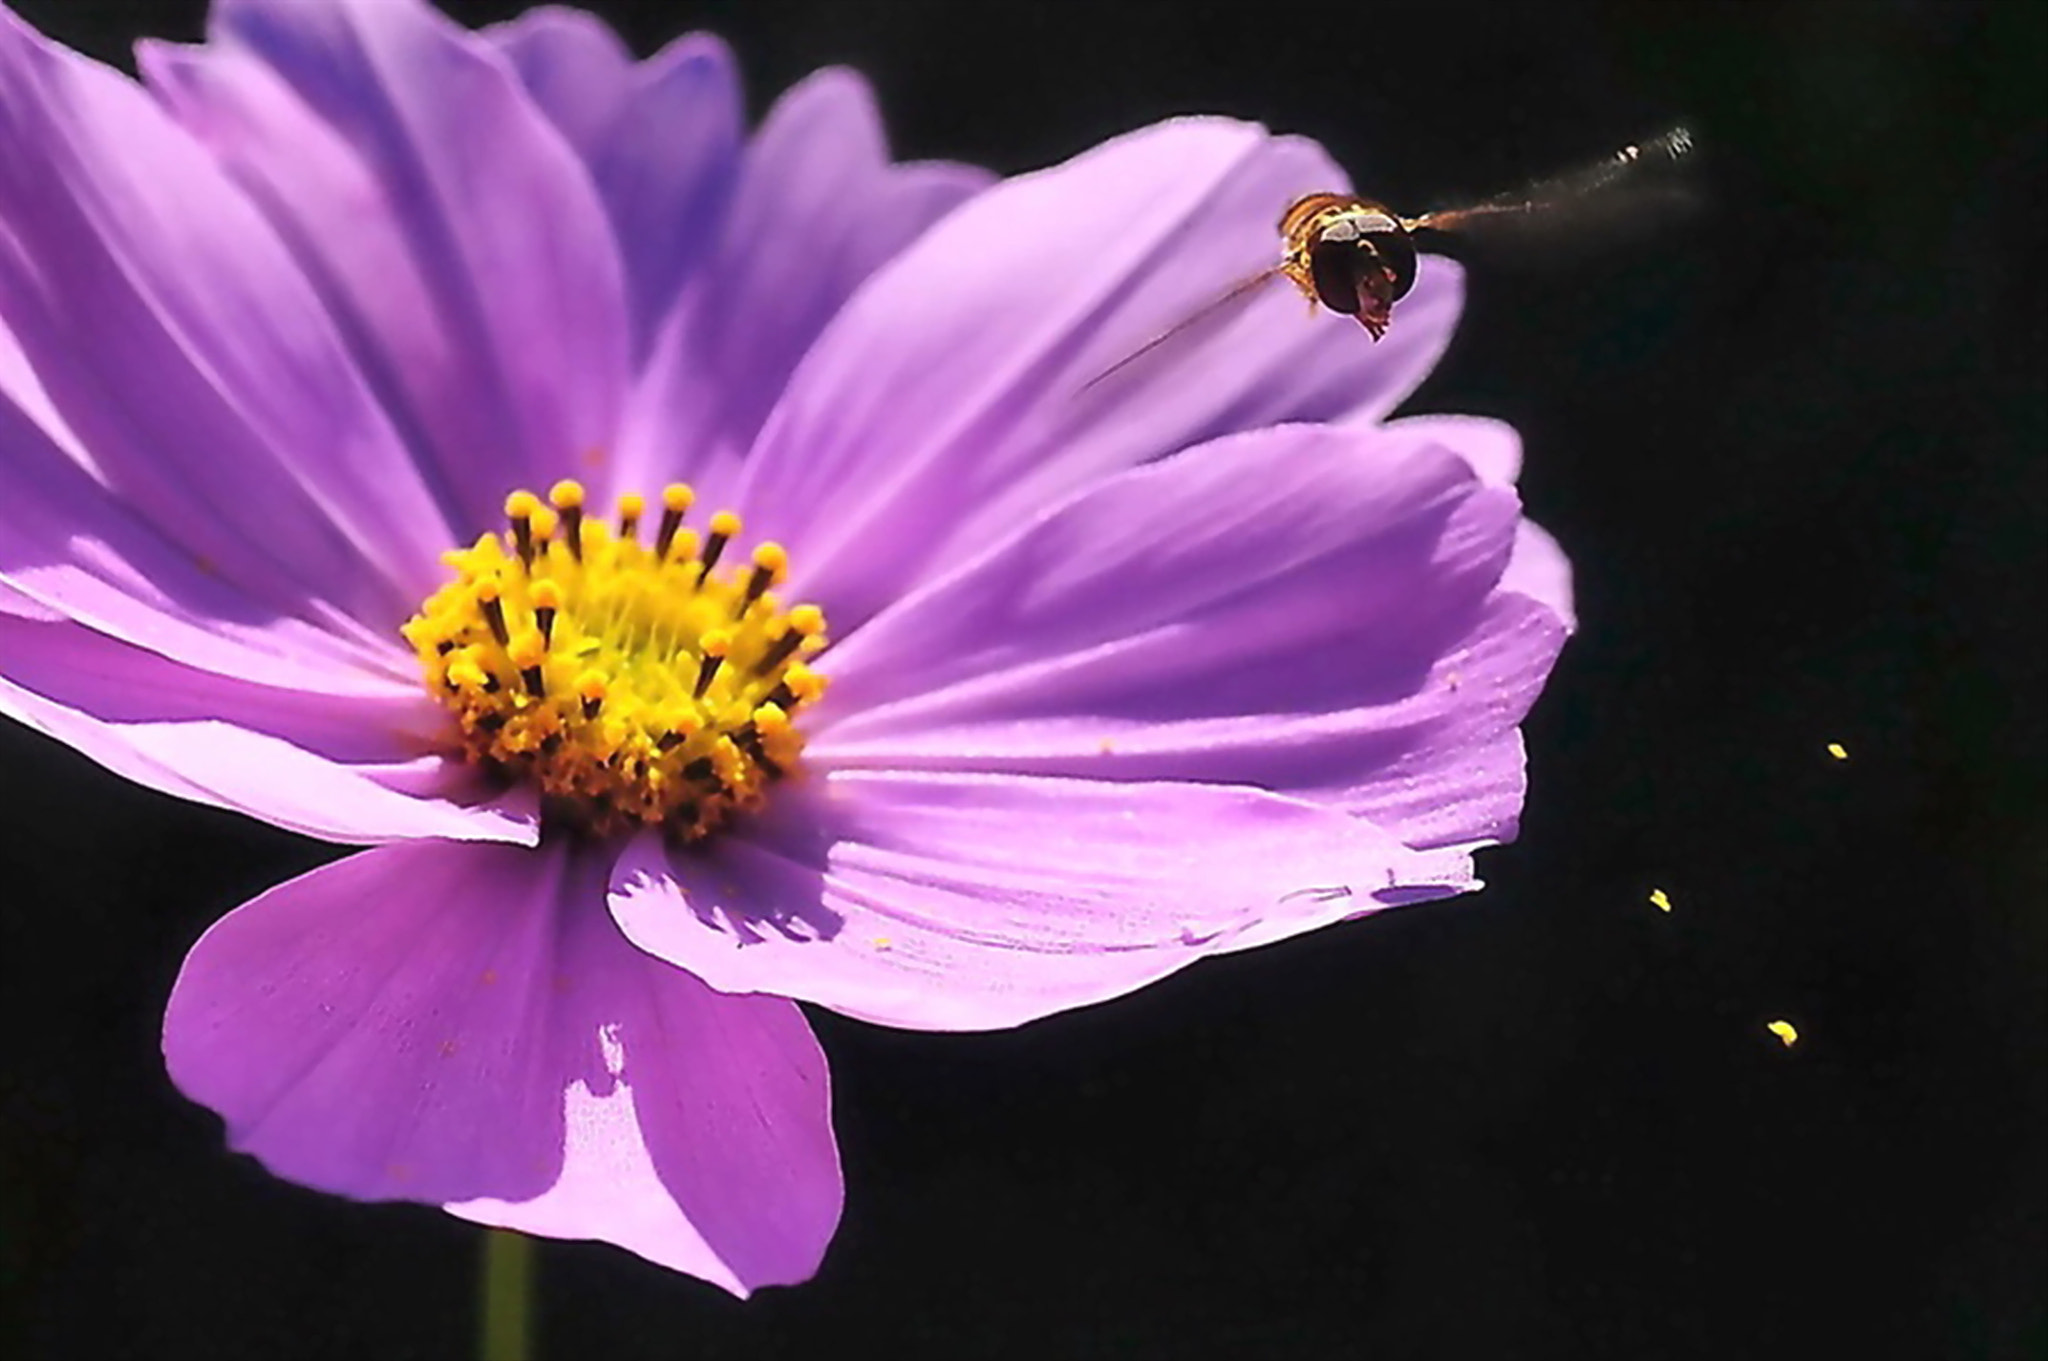 Photograph HonyBee flying in the cosmos -1 by KEN OHSAWA on 500px